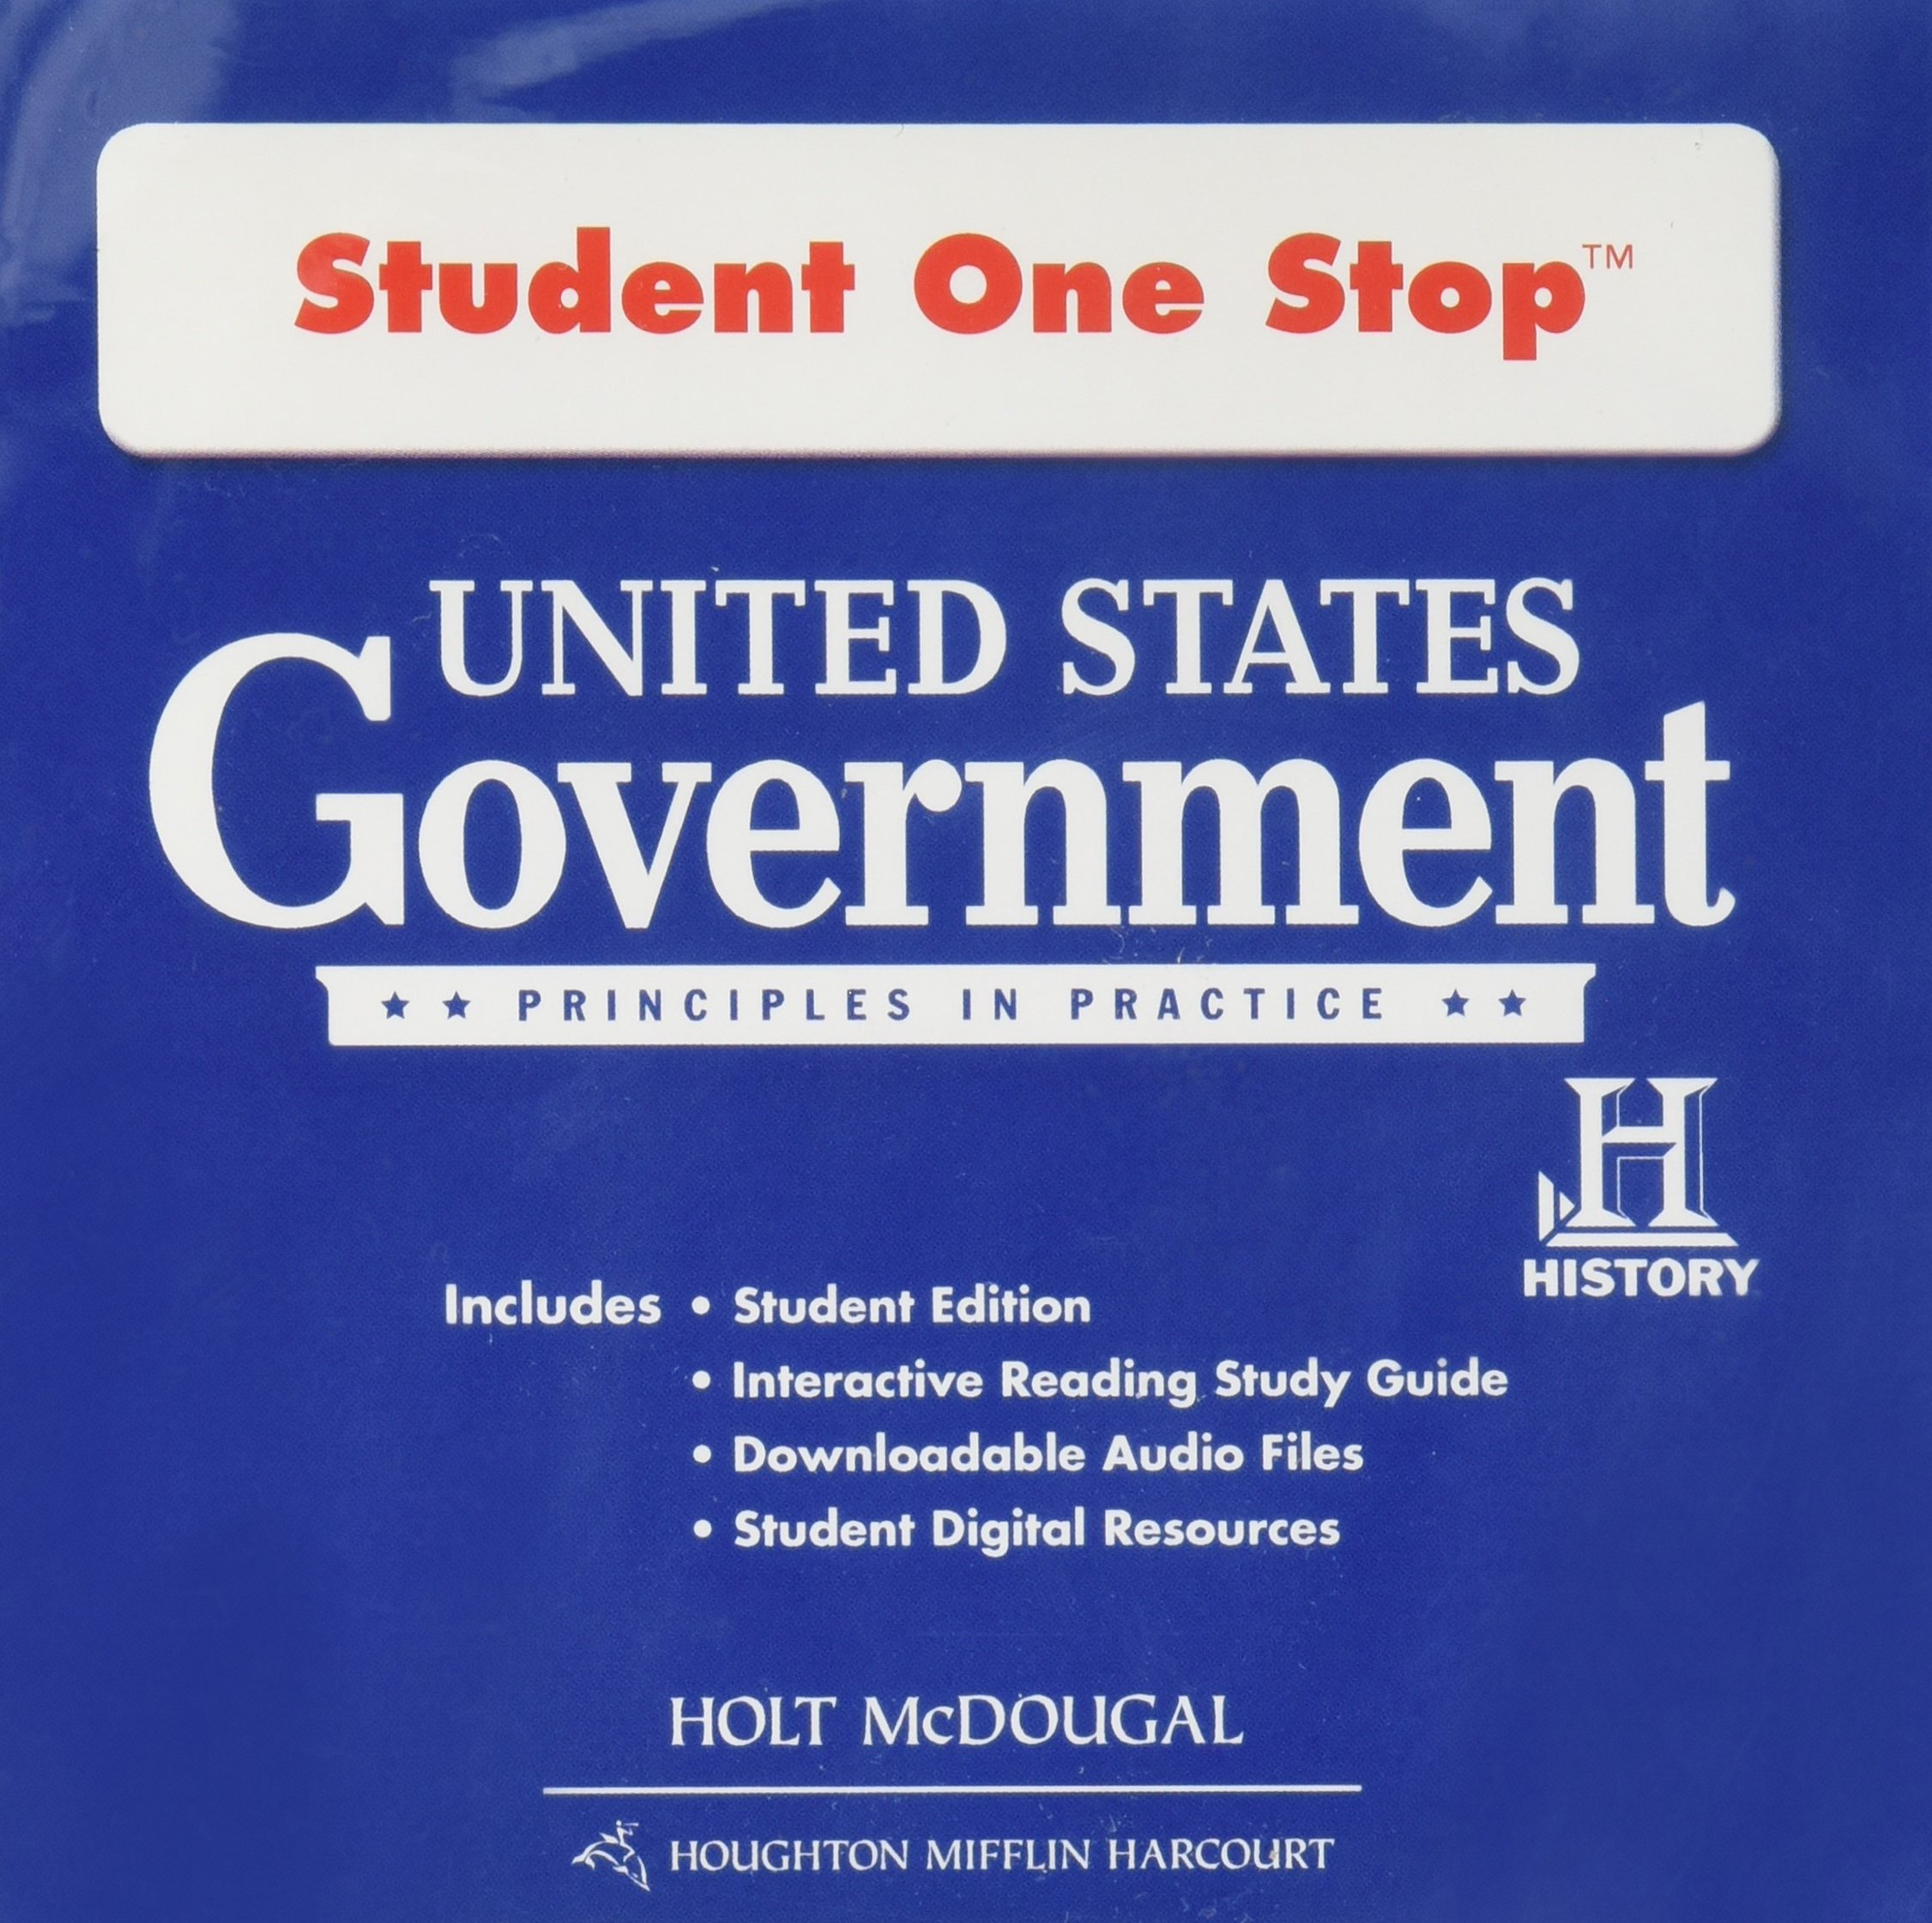 Amazon.com: United States Government: Principles in Practice: Student One  Stop DVD-ROM 2012 (9780547520513): HOLT MCDOUGAL: Books